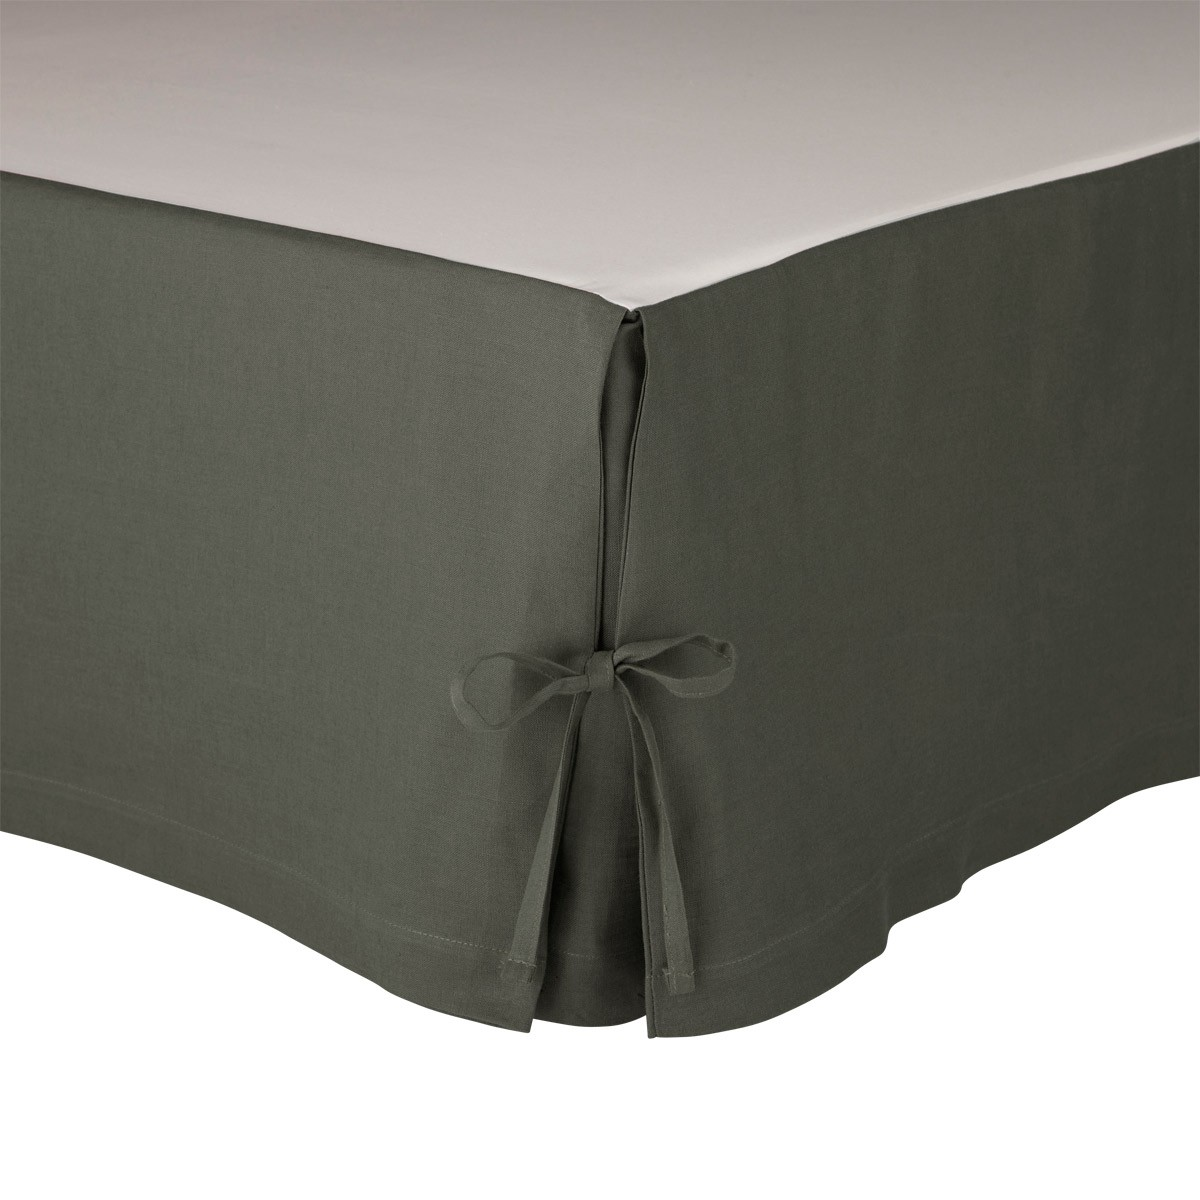 Cache sommier Lin Anthracite 180 x 200 cm (photo)